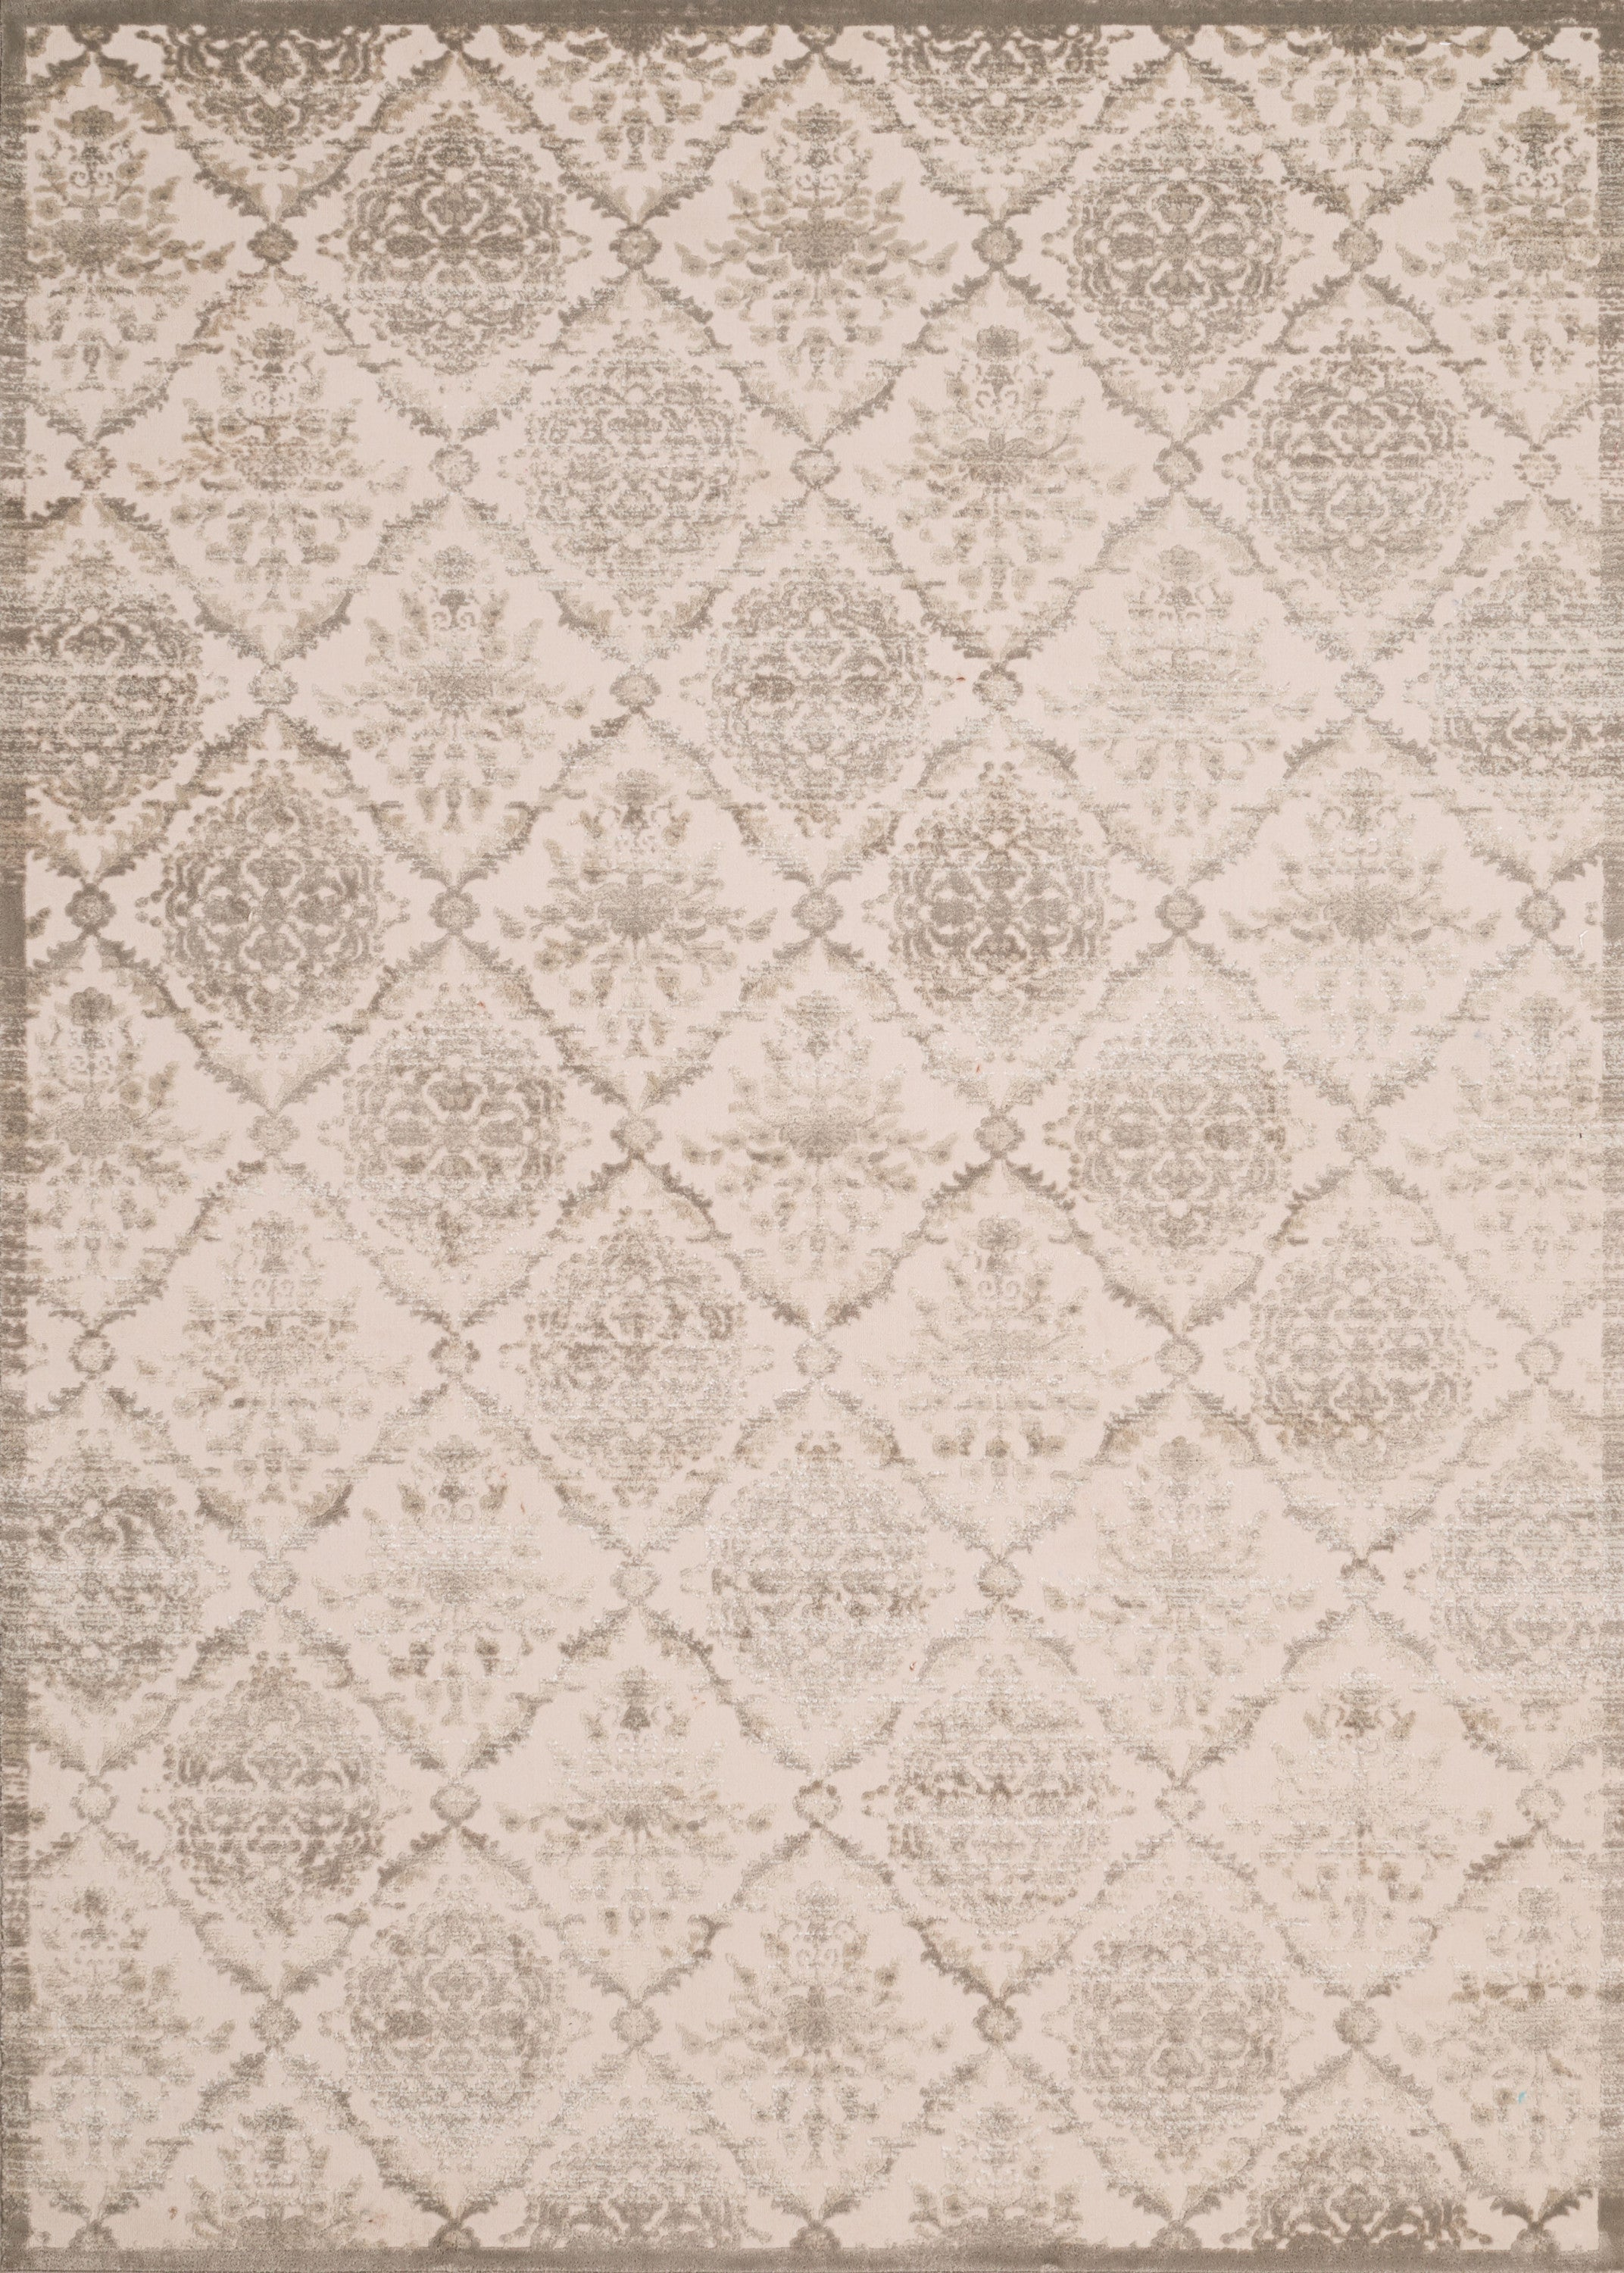 United Weavers - Dais Rug Collection -  ELEGANT TRELLIS TAUPE (1820-30296)